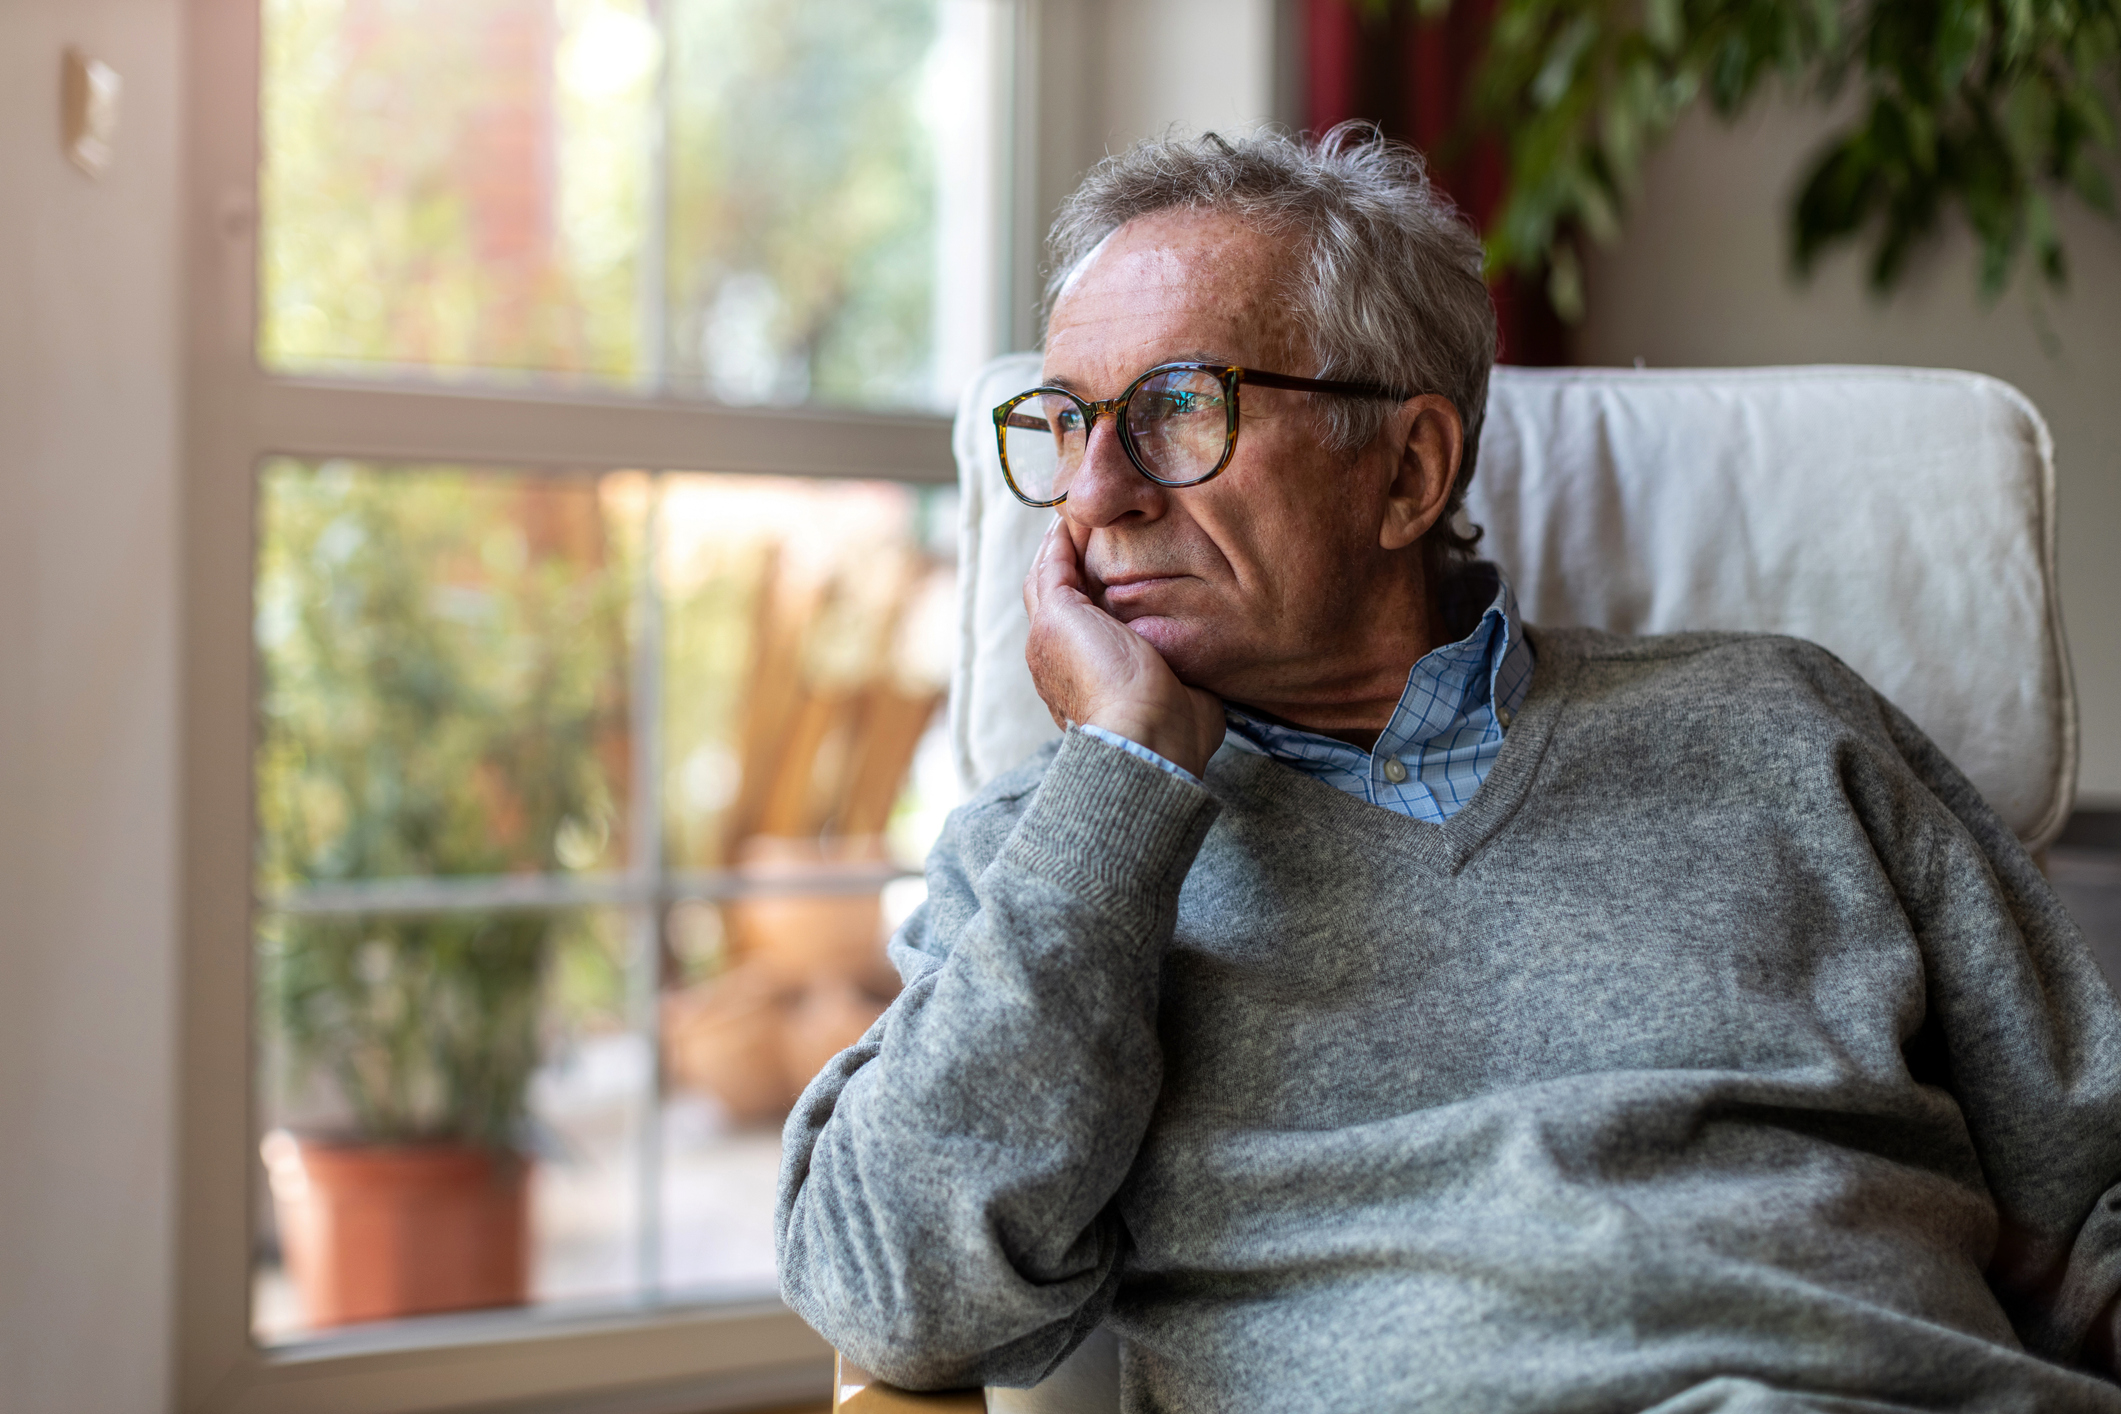 'Loneliness' prescriptions are putting older adults in jeopardy